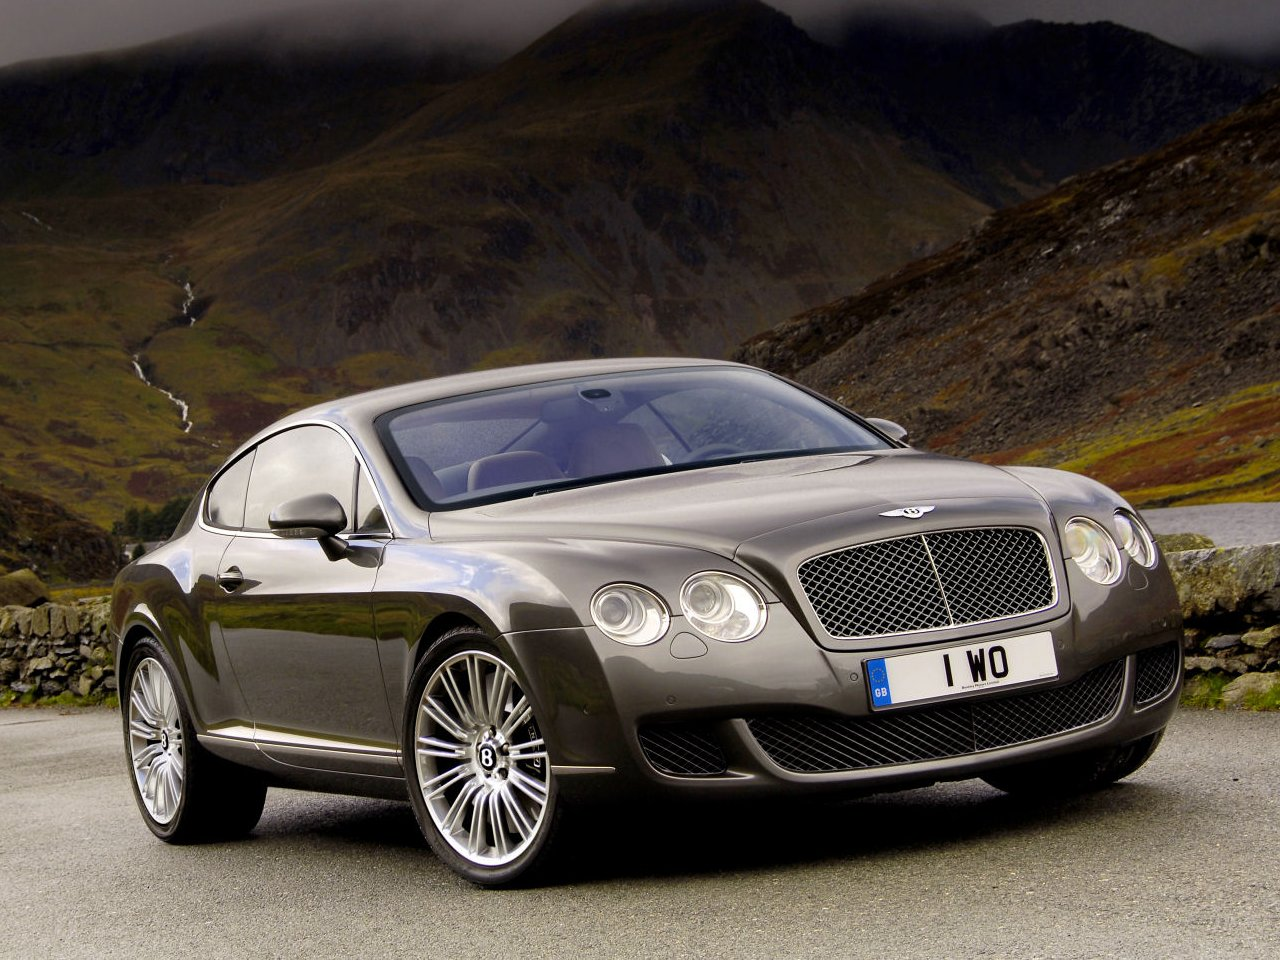 Bentley image Wallpaper